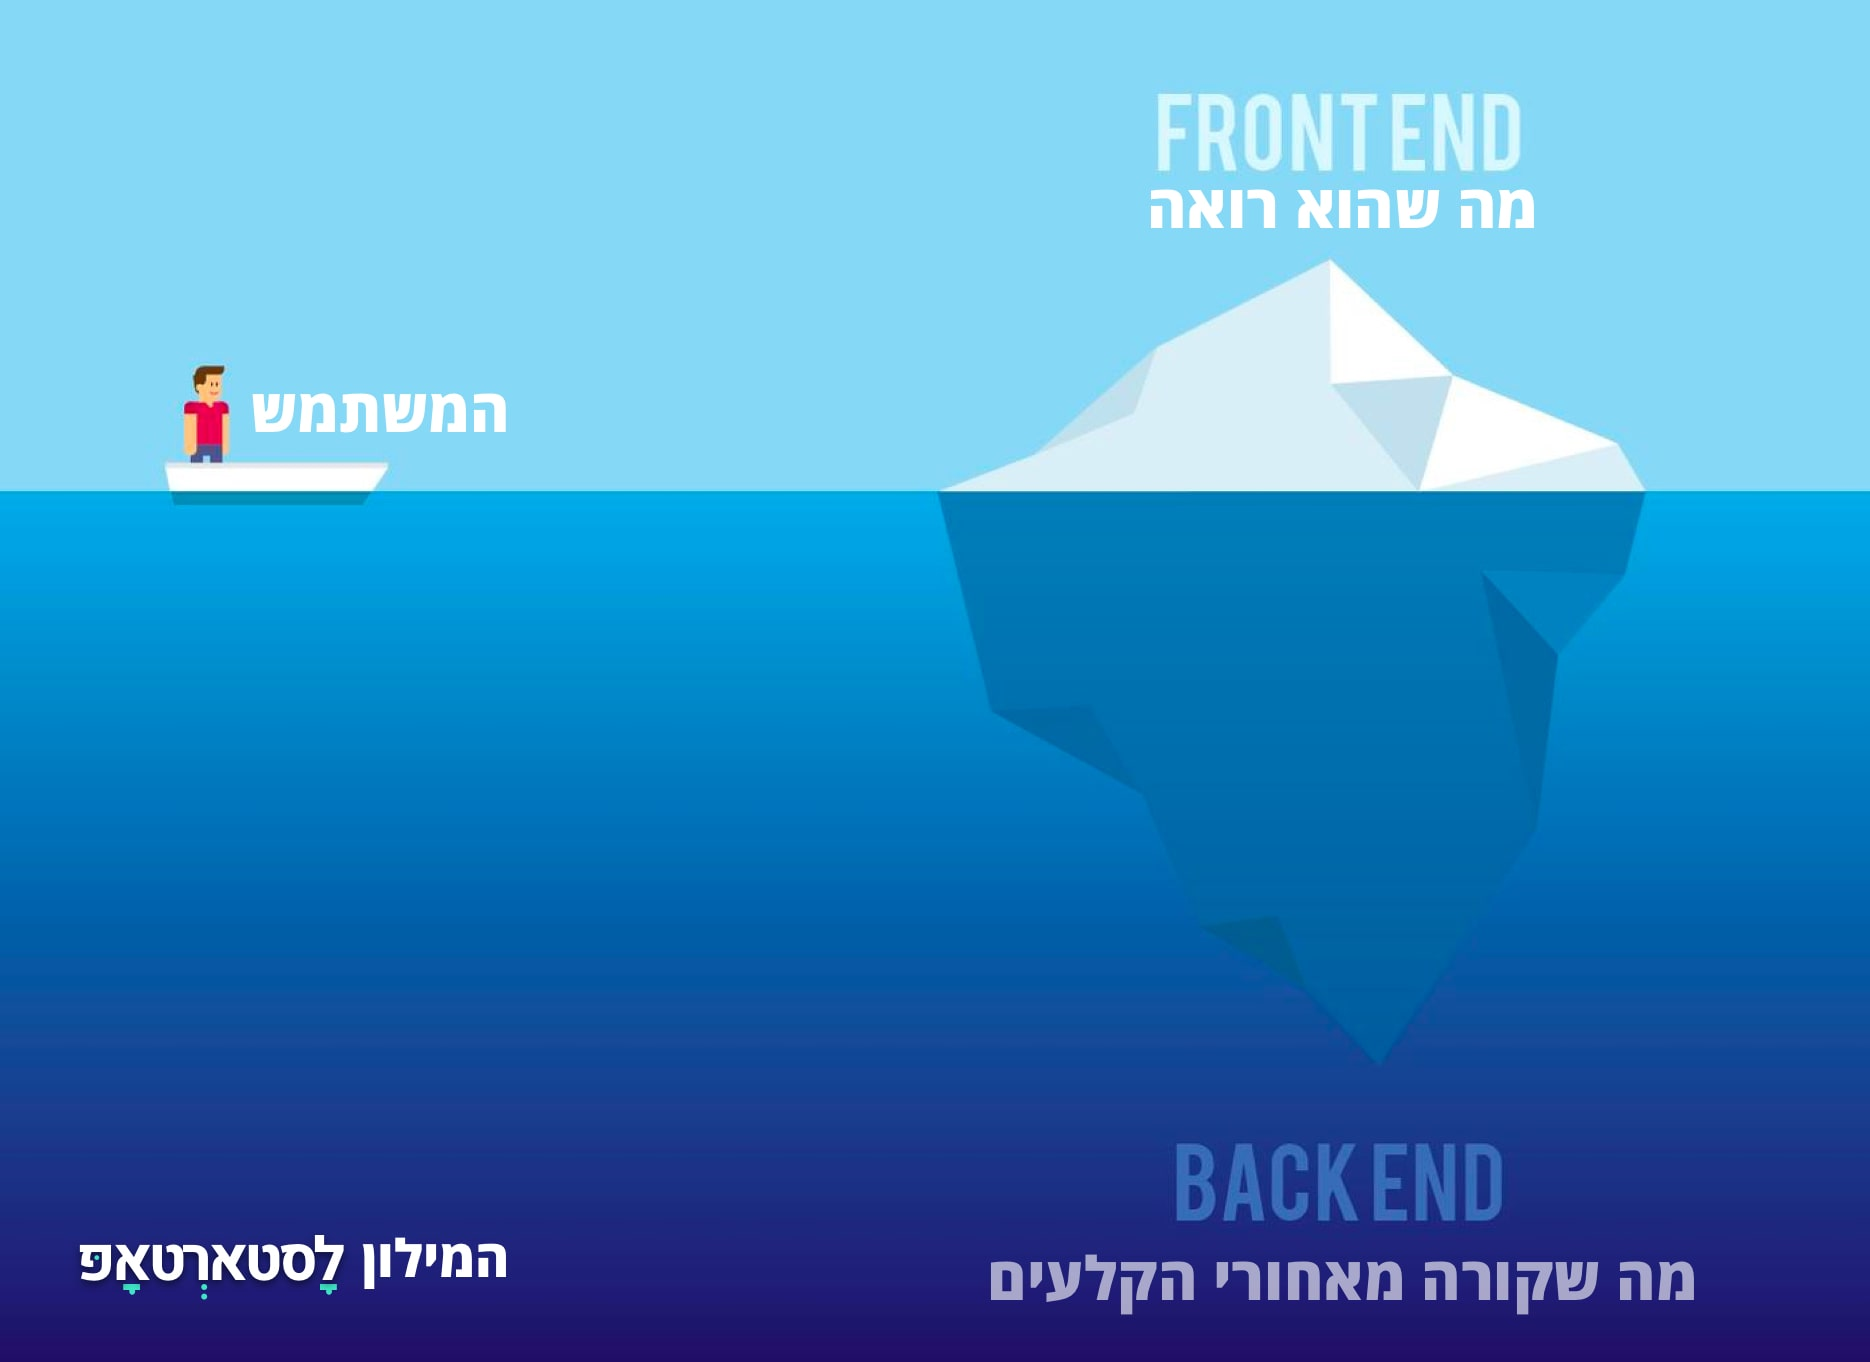 Backend vs Front End